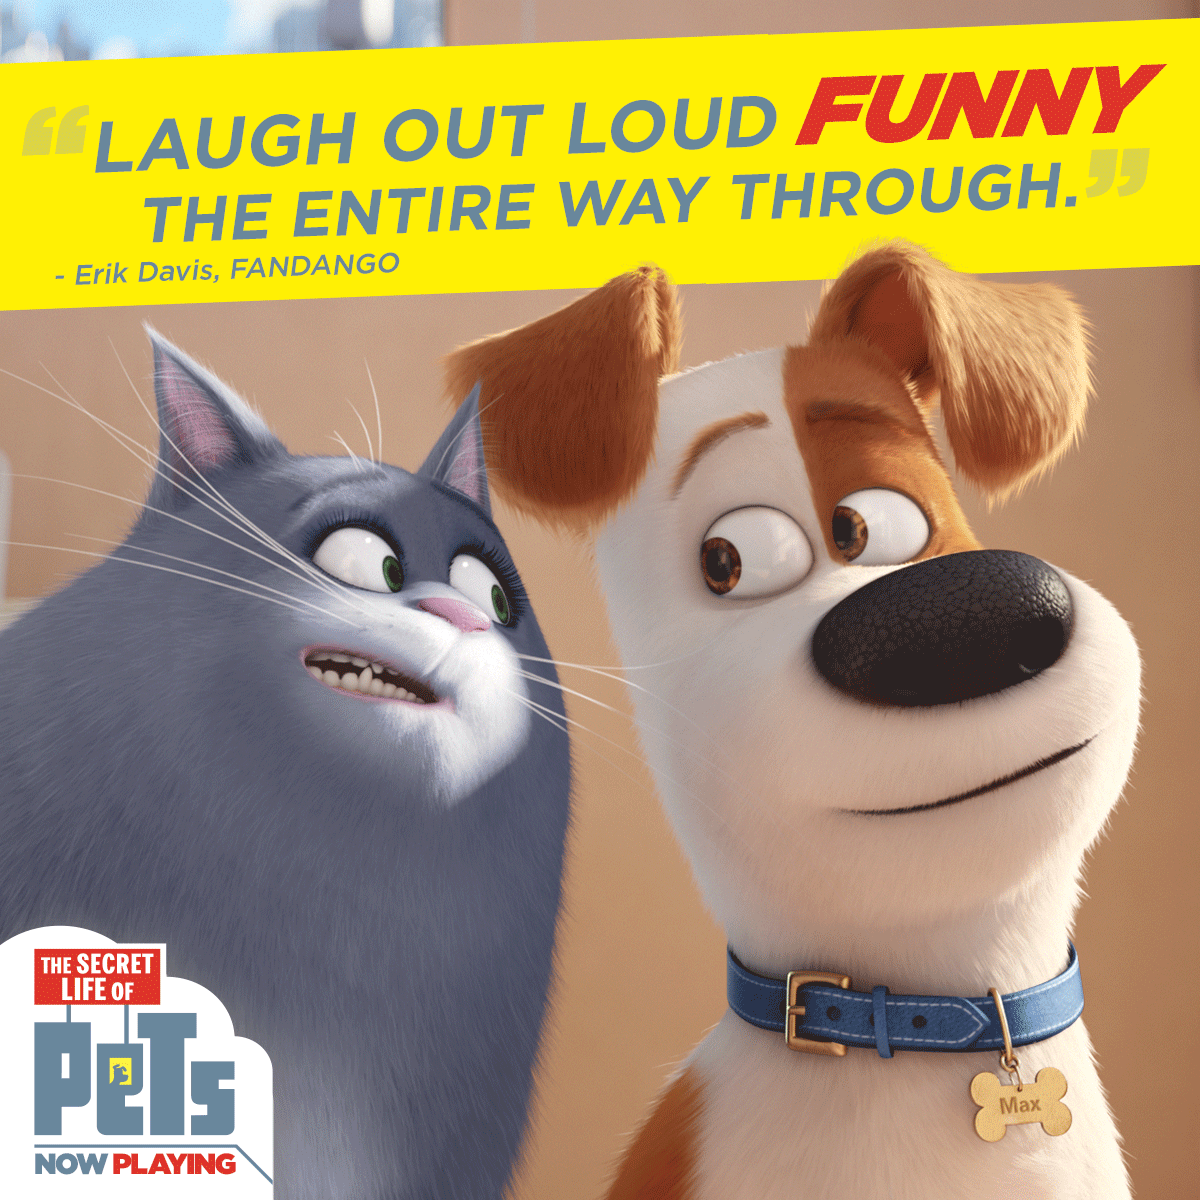 THE SECRET LIFE OF PETS 2 (With images) Secret life of